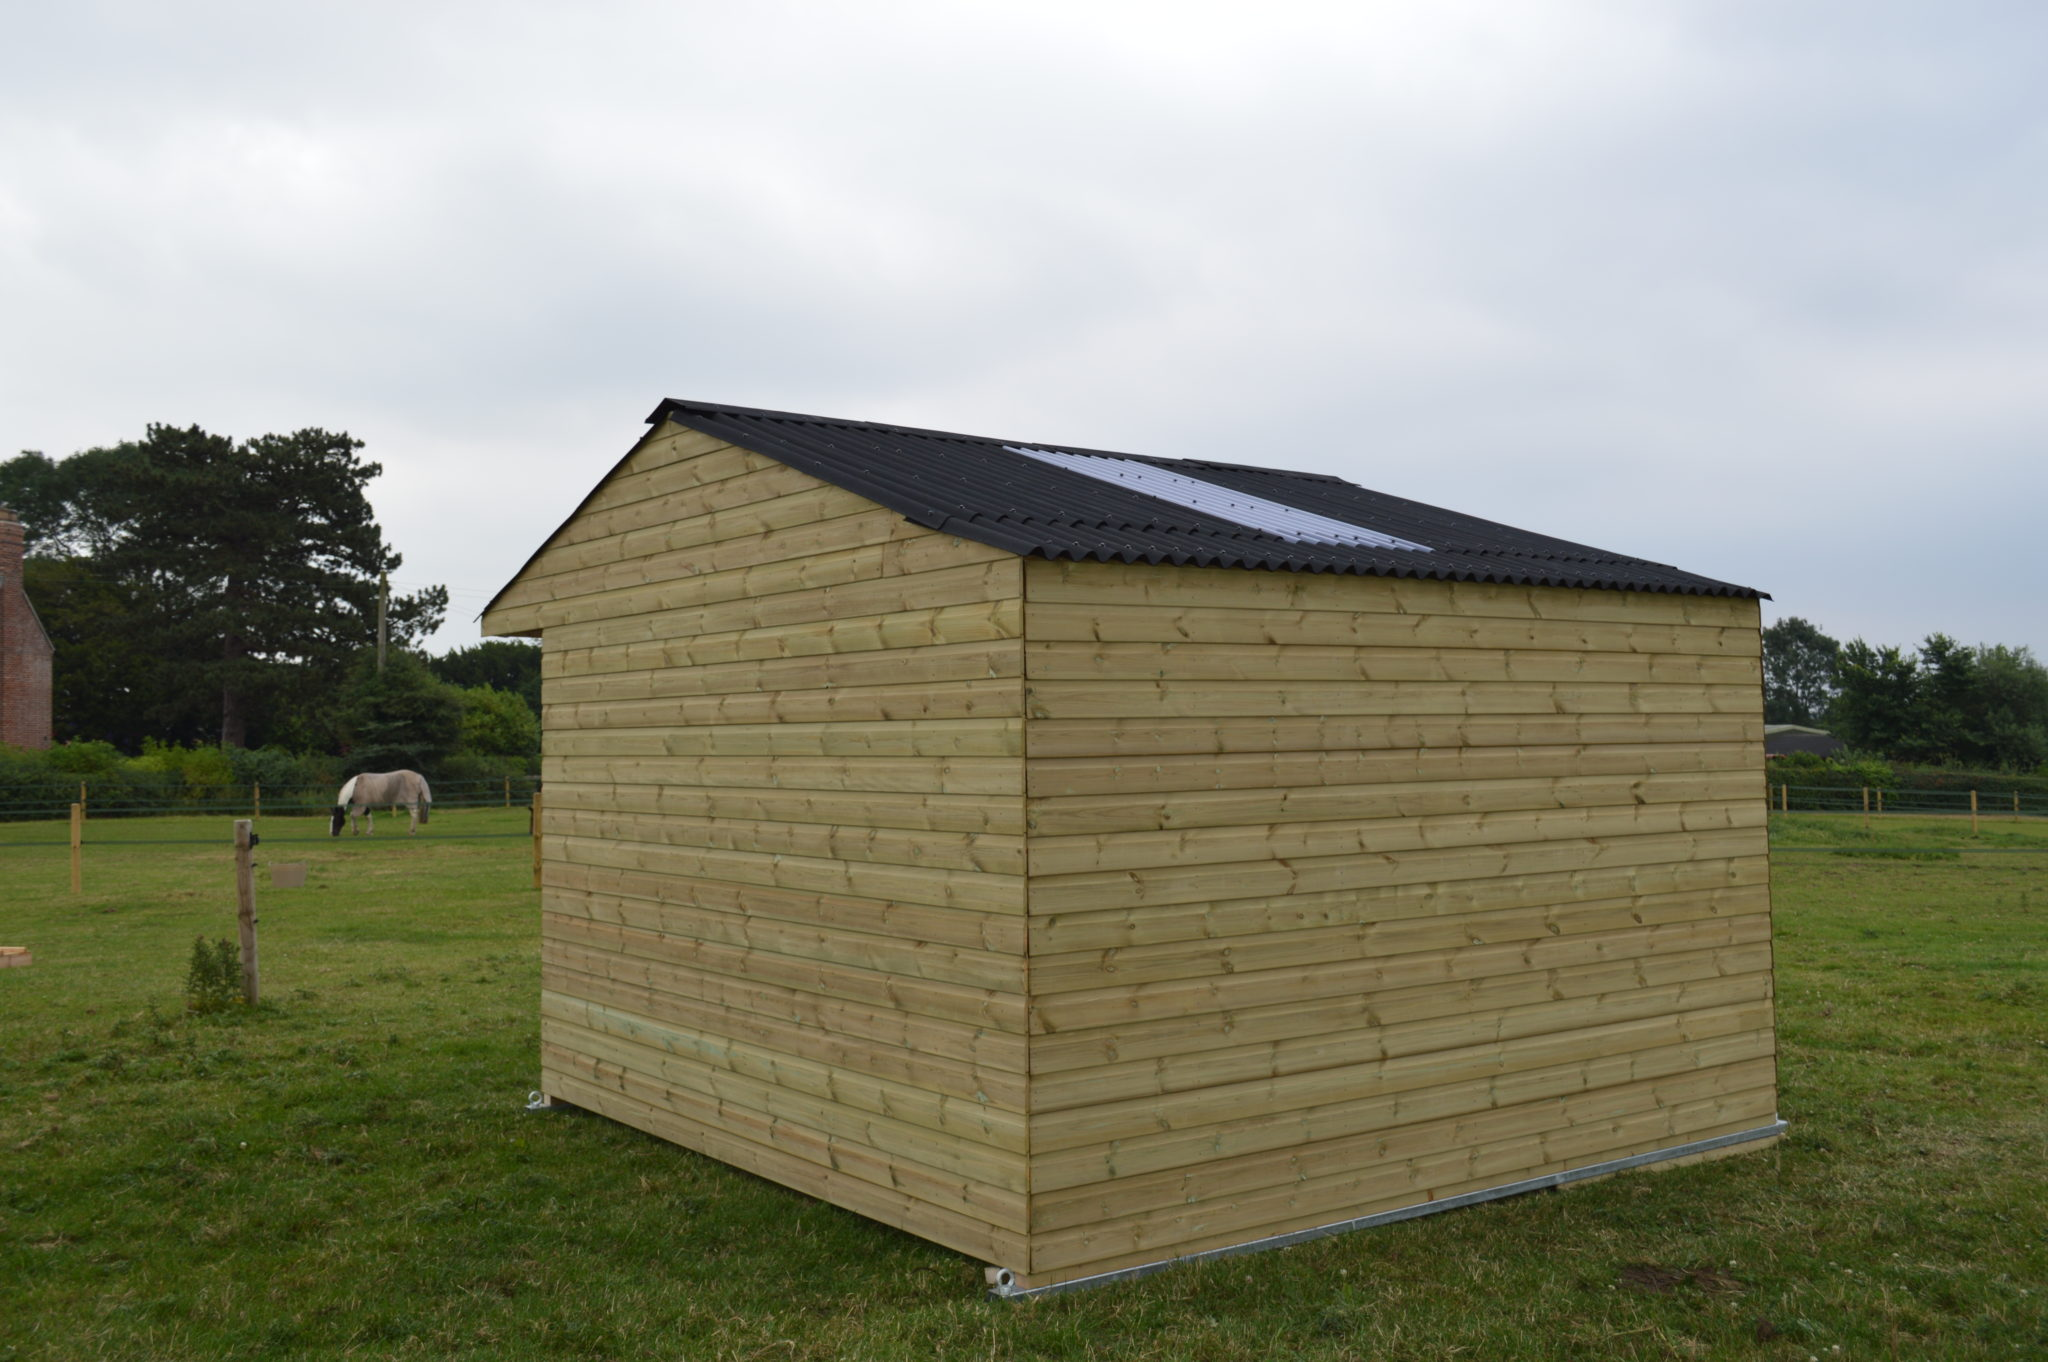 12x12 Mobile Field Shelter on Steel Skids - Rear View